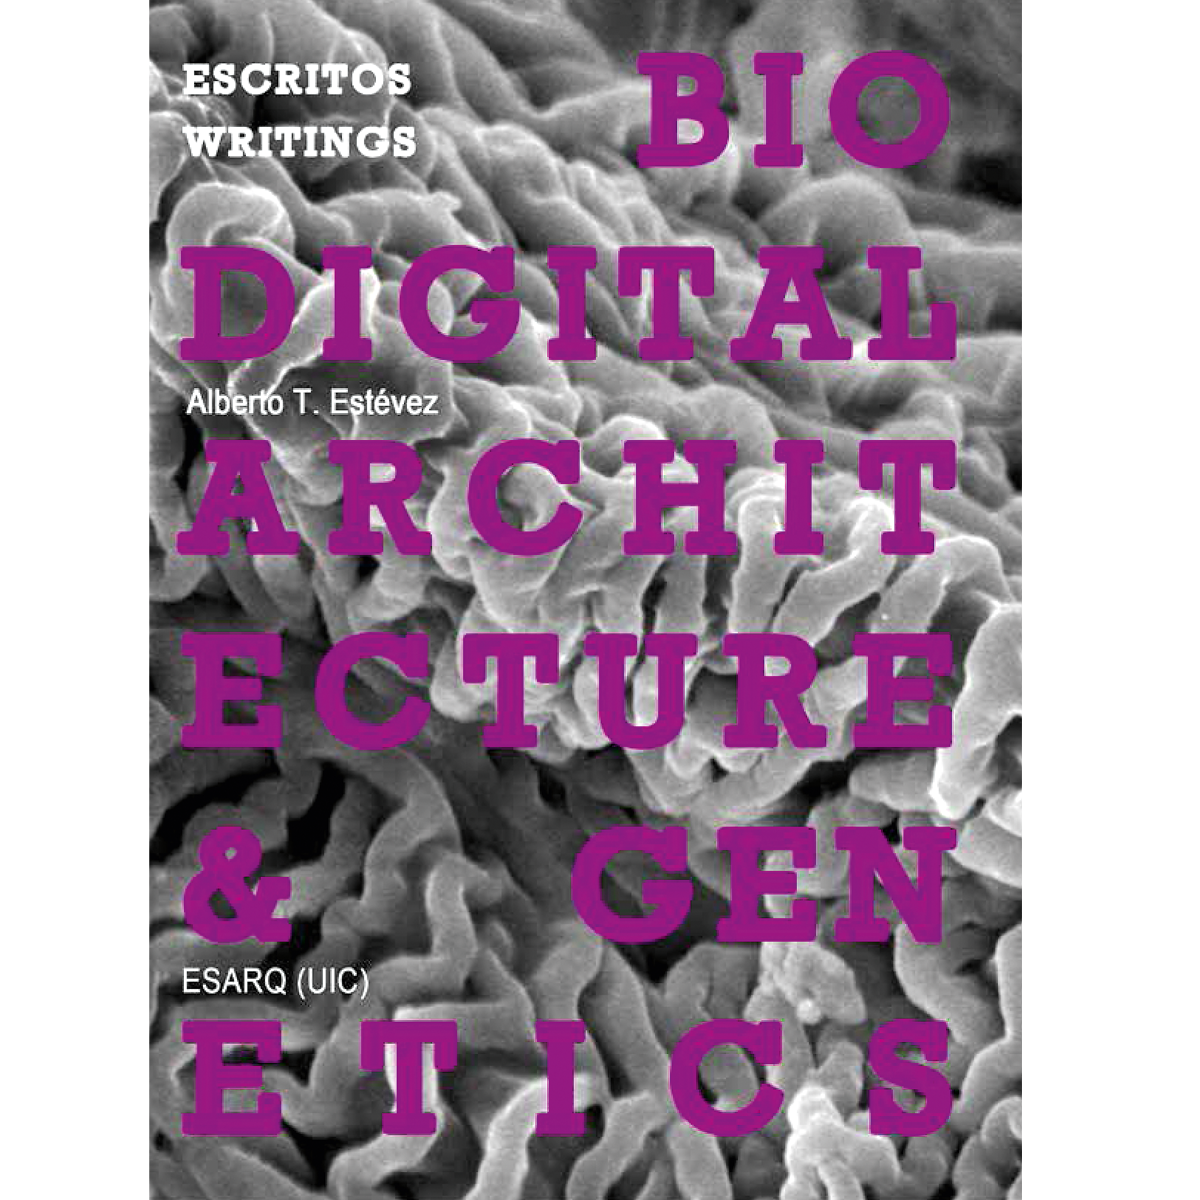 Biodigital Architecture & Genetics